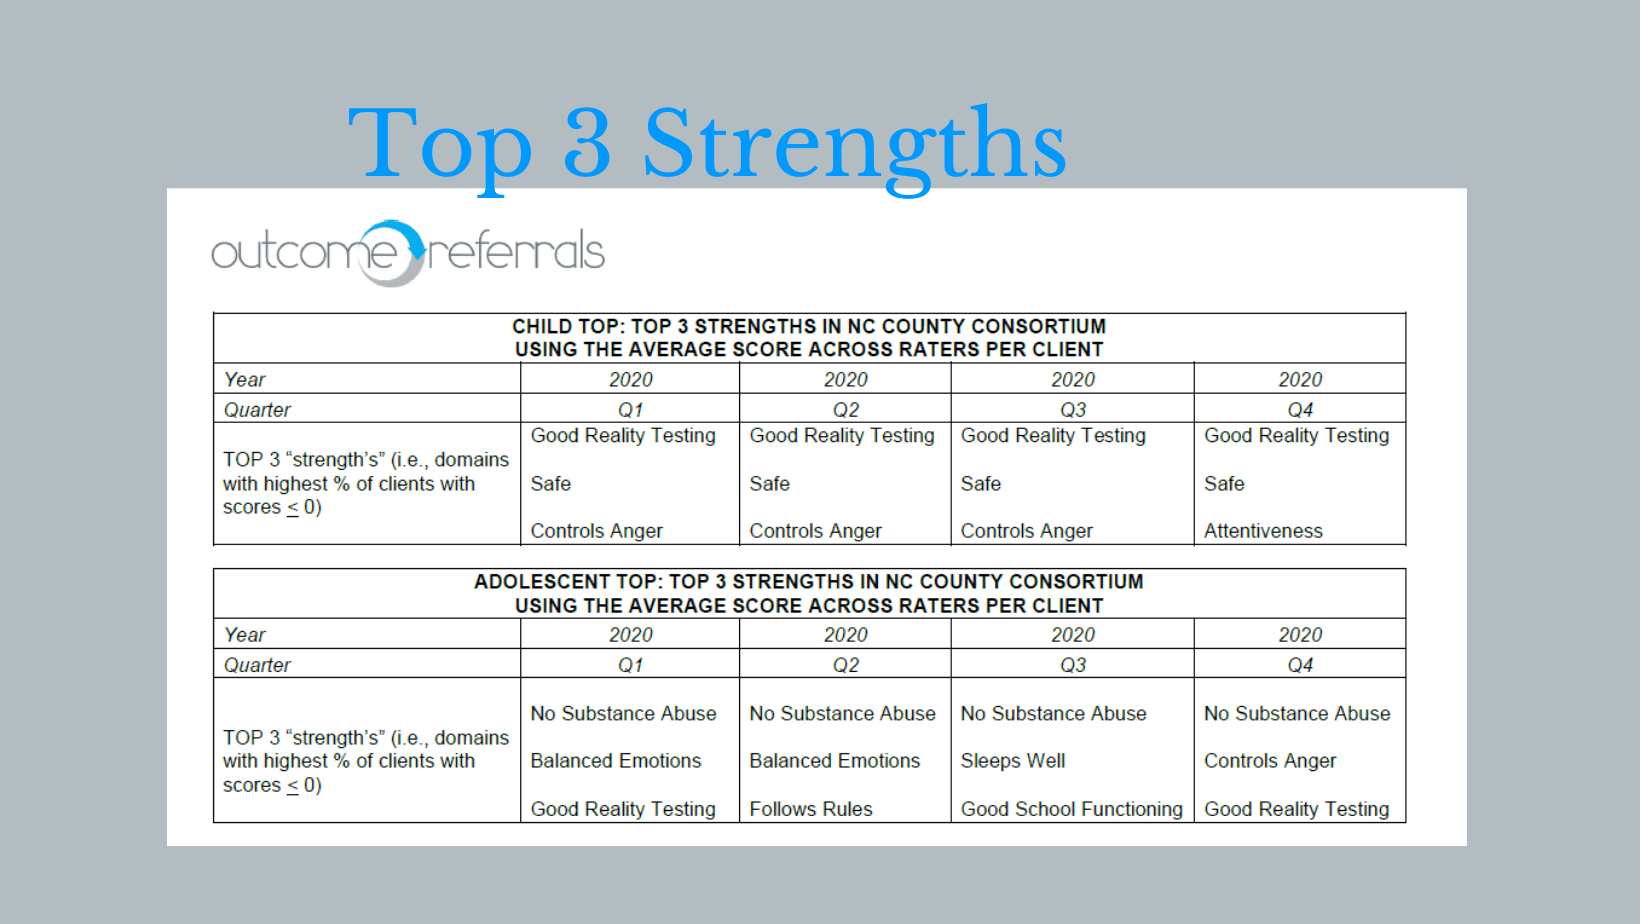 Top 3 Strengths